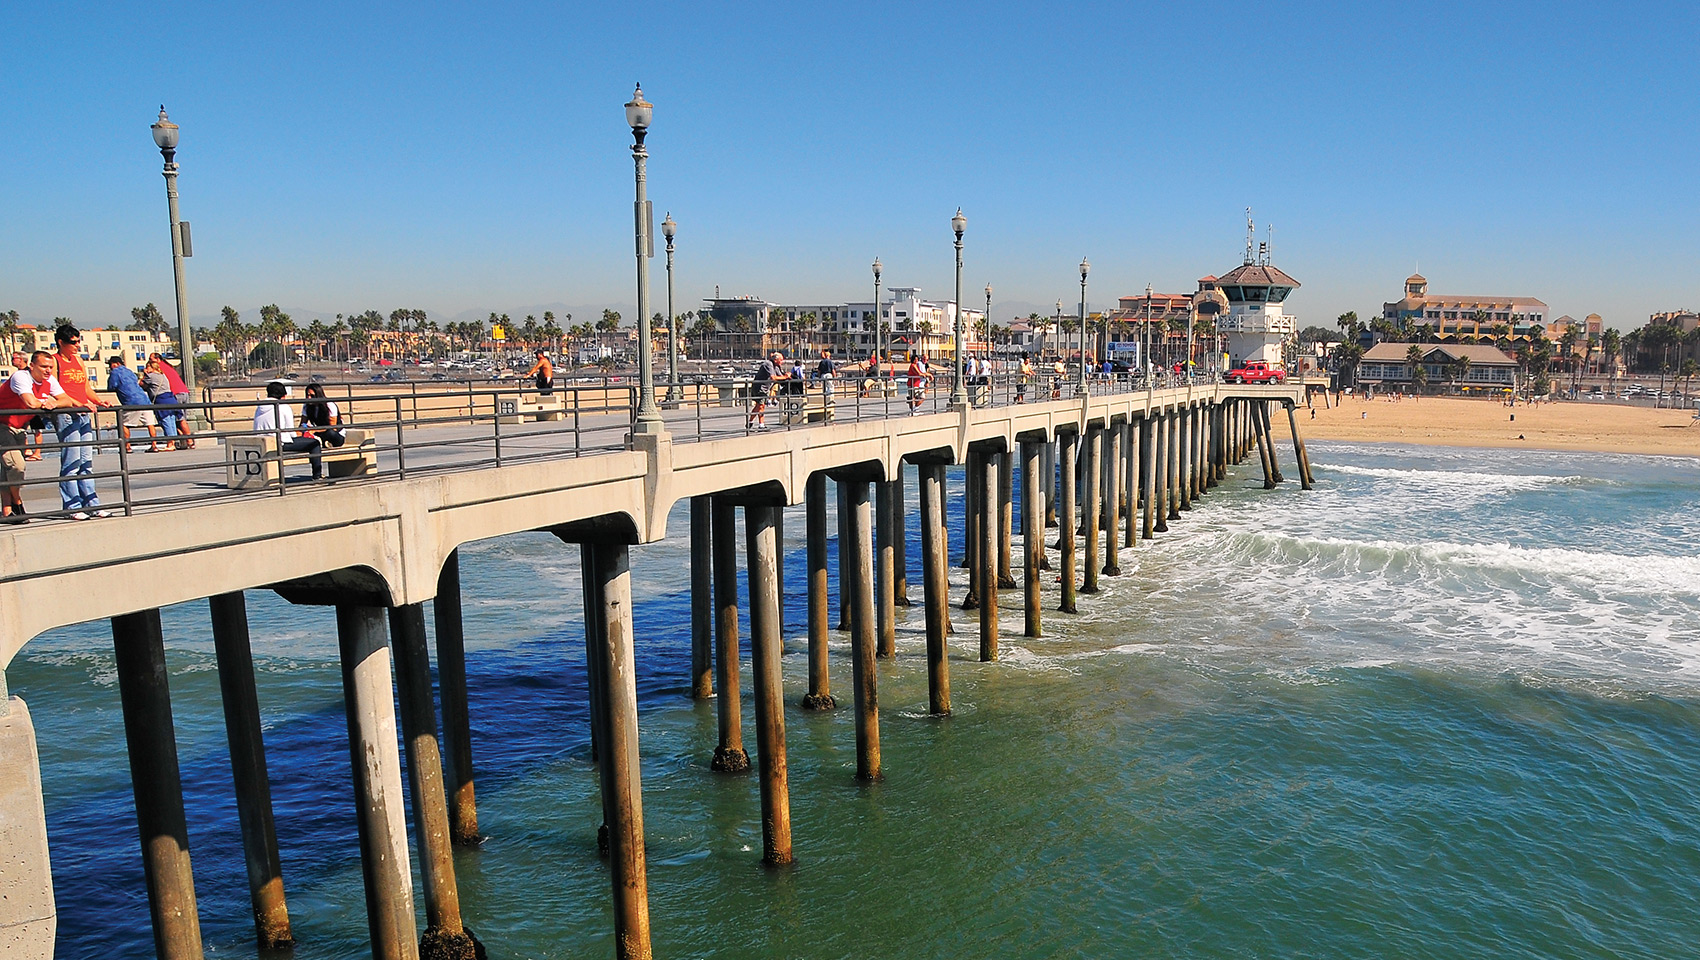 Huntington Beach Pier With Surfers Wading In The Water Below